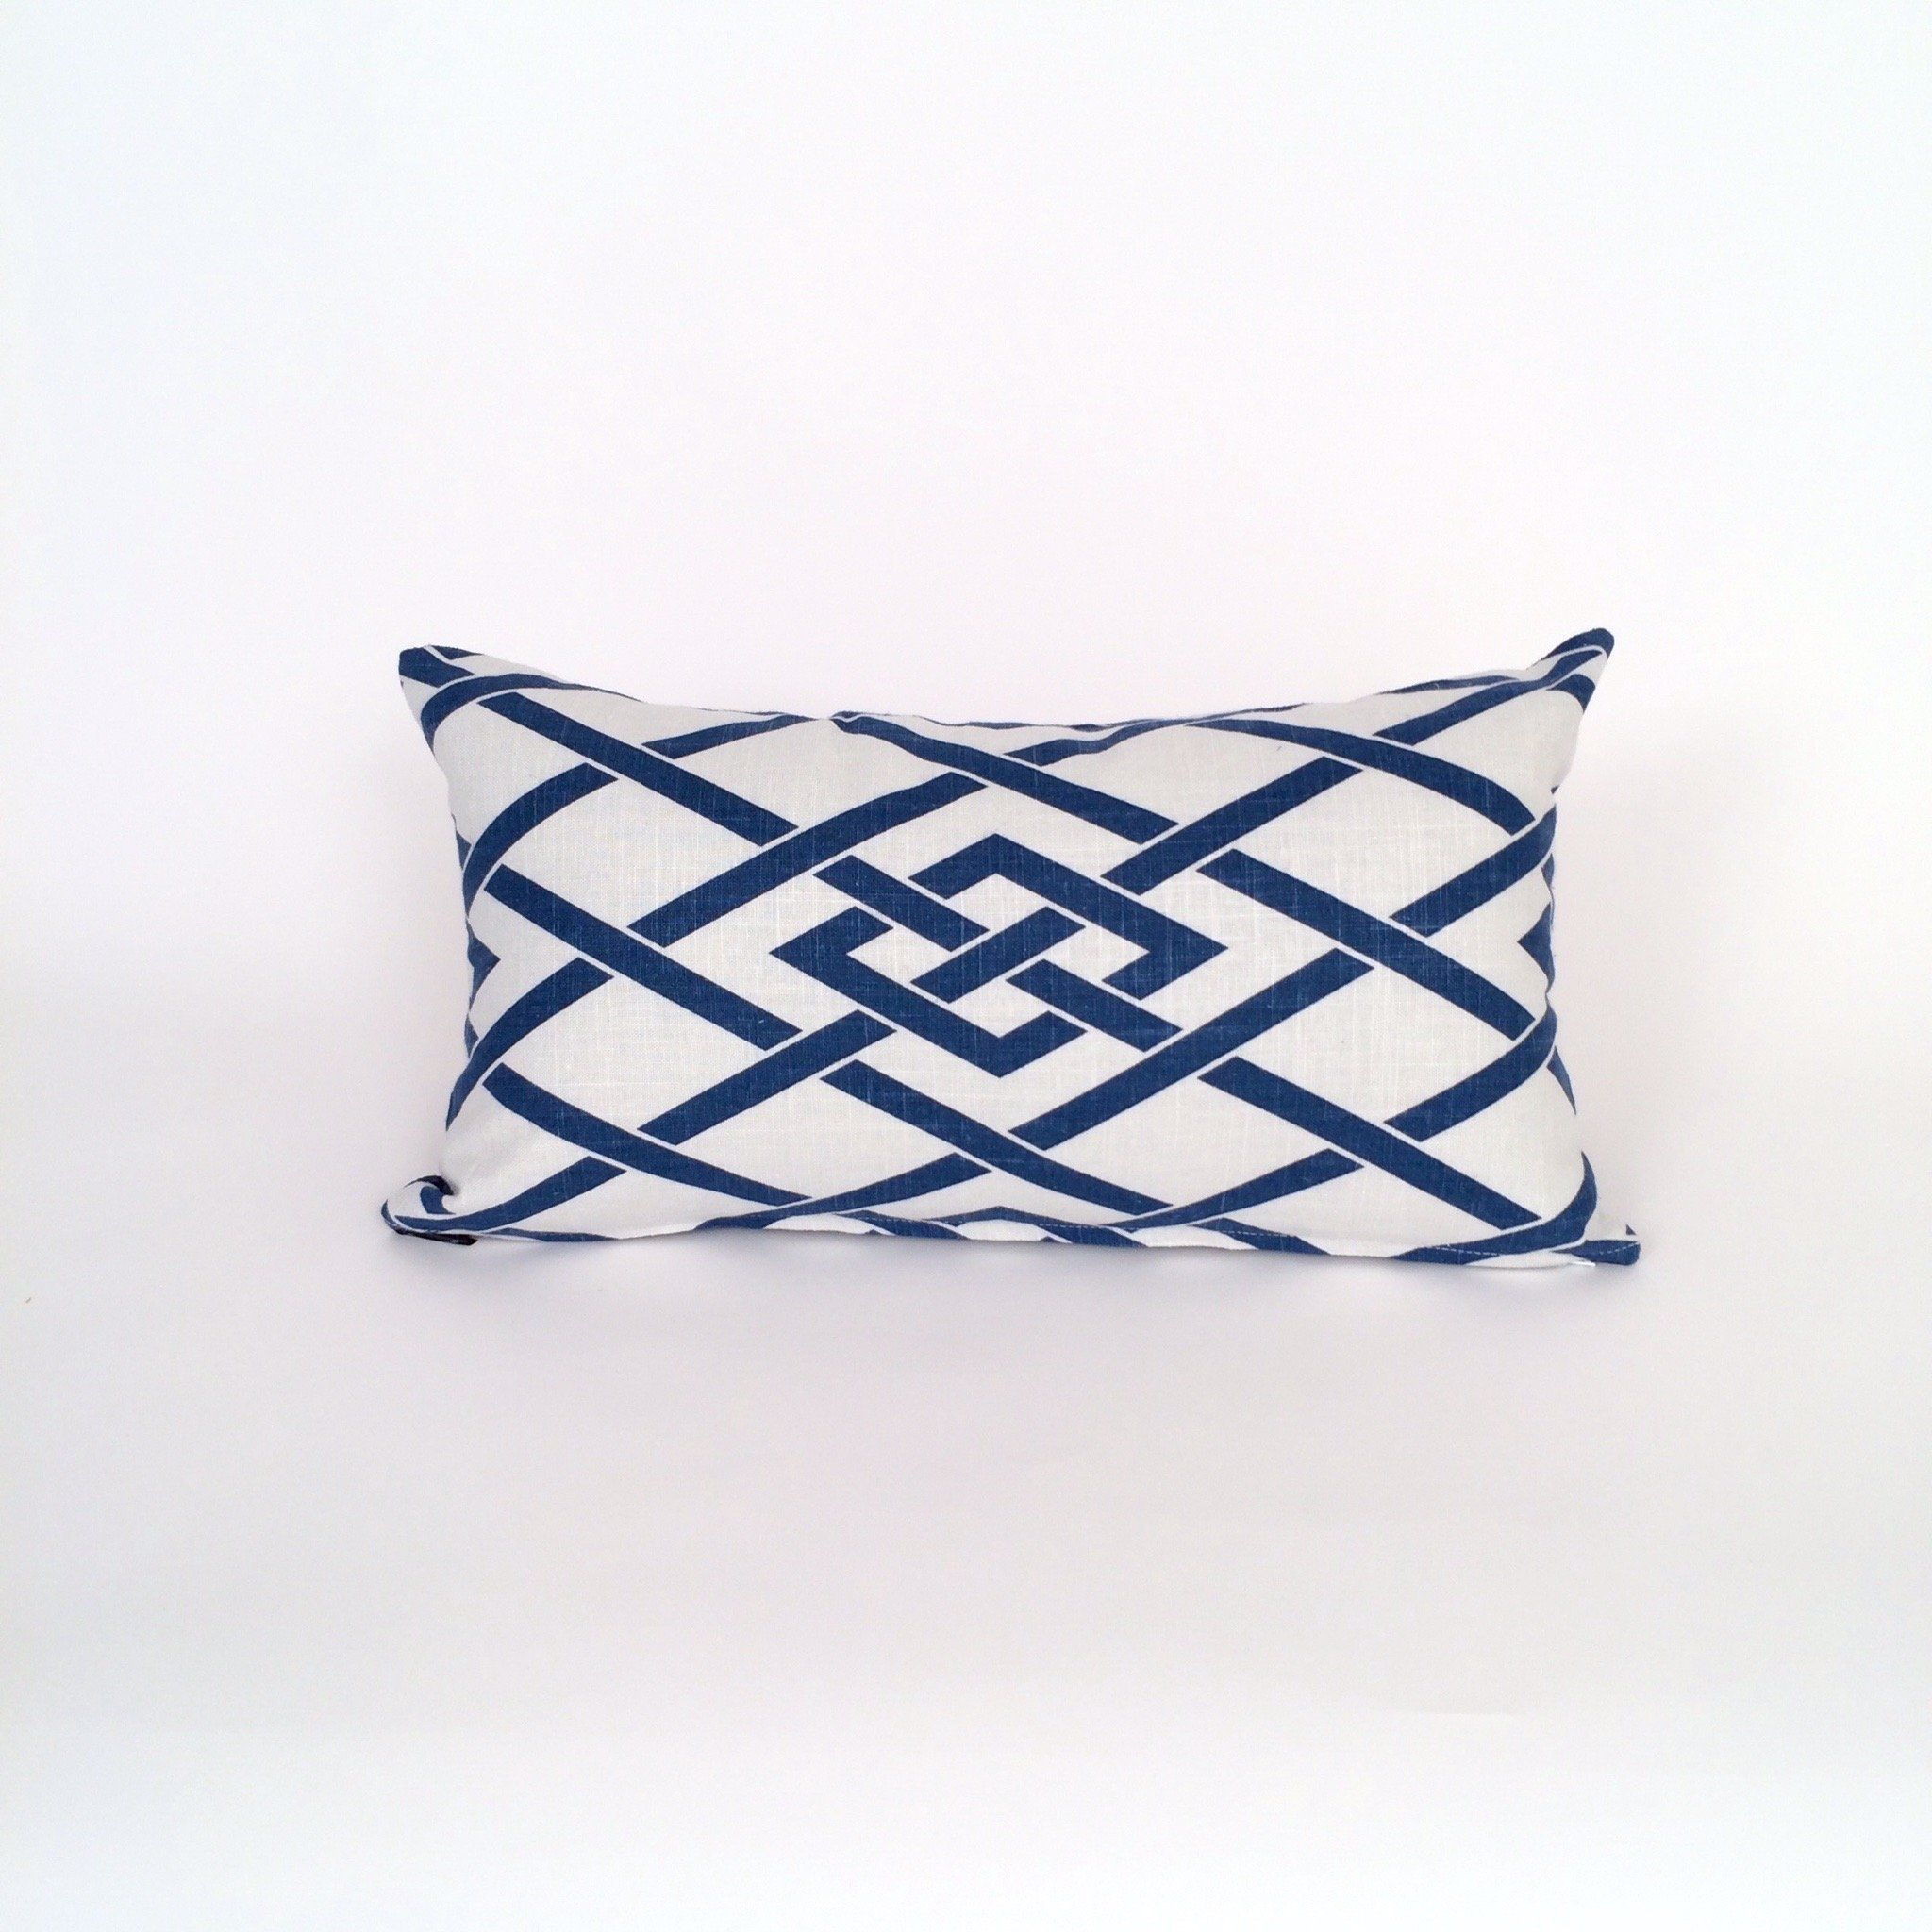 washable decorative foil polyester machine removable cover zipper decor pillow pillows or fear material waterfowl g salisbury enclosure using outdoor pattern advantages fill accentuate exceptional dk geometric lumbar tips in outstanding tile cotton swish